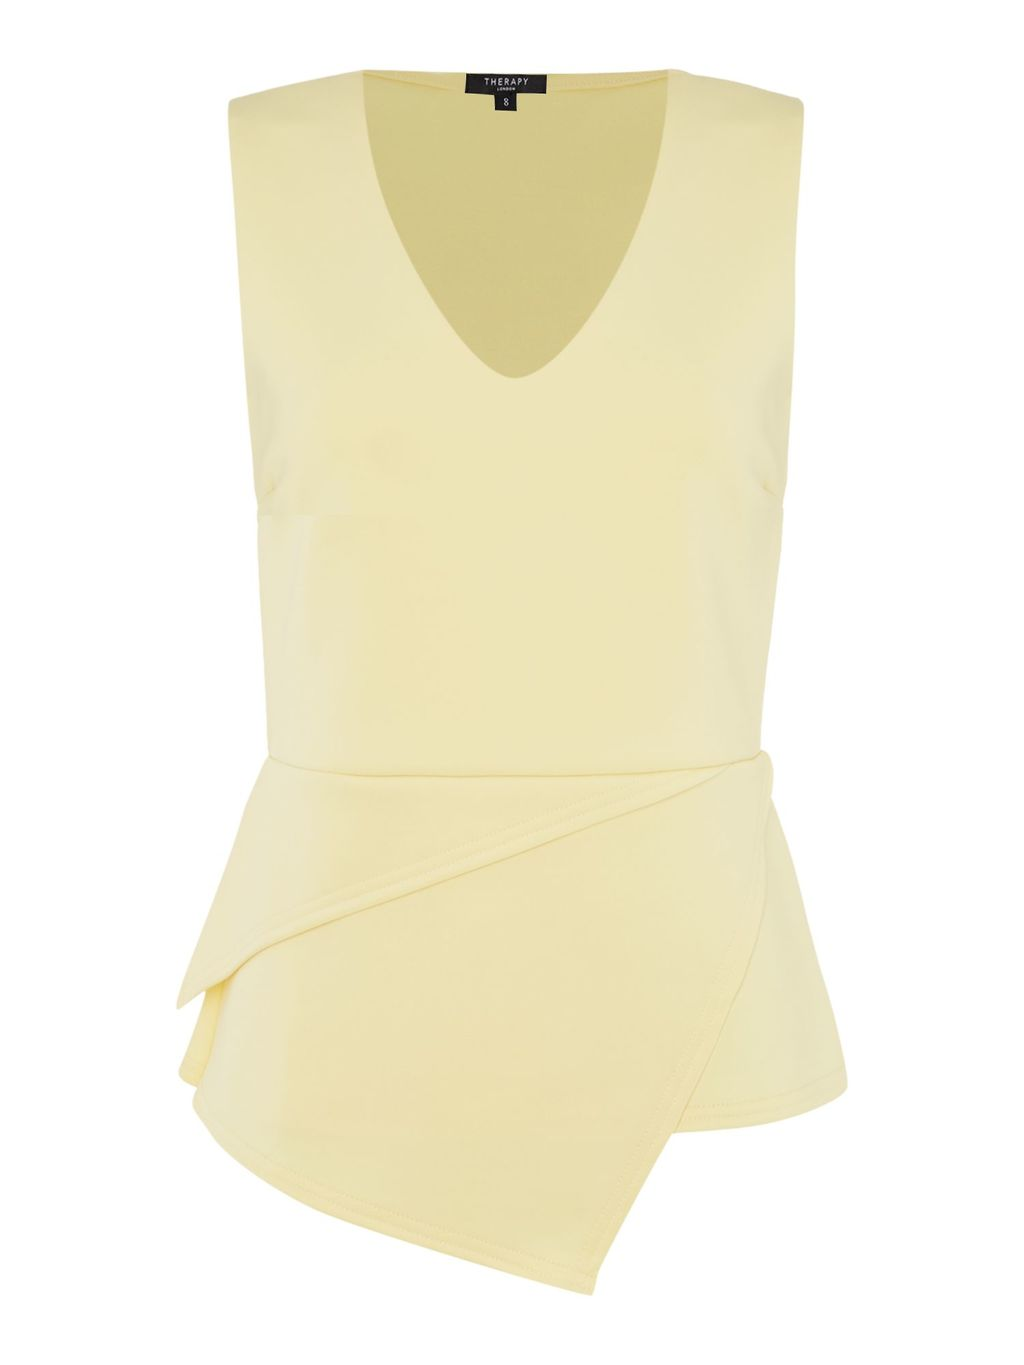 Hana Pleat Detail Top, Lemon - neckline: v-neck; pattern: plain; sleeve style: sleeveless; waist detail: peplum waist detail; predominant colour: primrose yellow; occasions: evening; length: standard; style: top; fibres: polyester/polyamide - stretch; fit: body skimming; sleeve length: sleeveless; pattern type: fabric; texture group: jersey - stretchy/drapey; season: s/s 2016; wardrobe: event